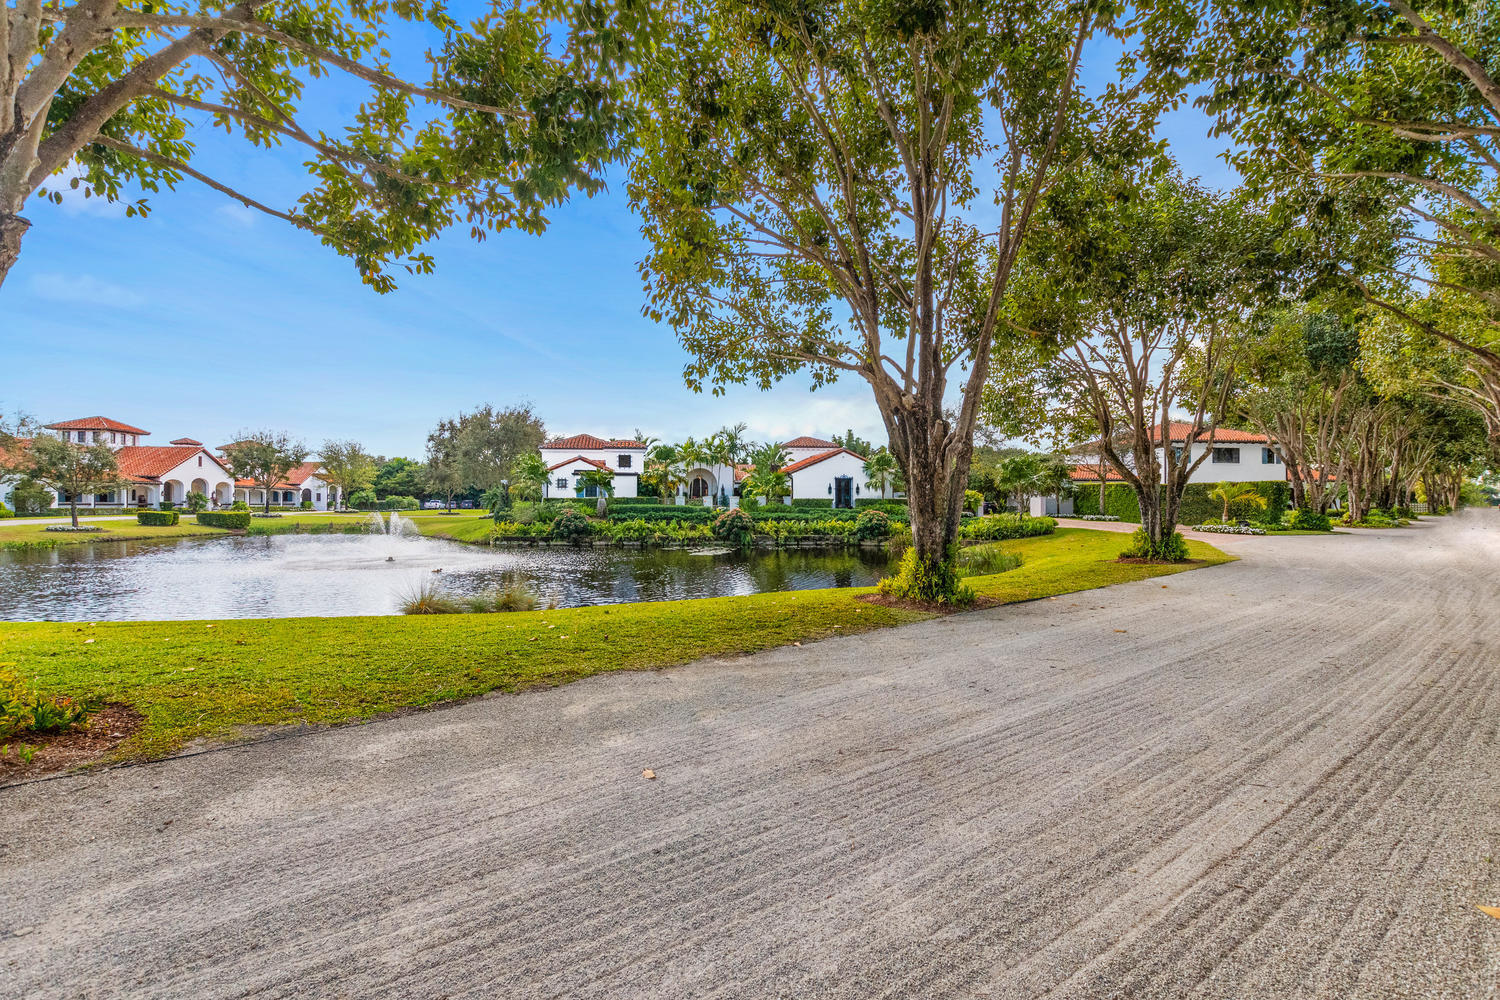 14775 Equestrian Way, Wellington, Florida 33414, 7 Bedrooms Bedrooms, ,11.3 BathroomsBathrooms,Single Family,For Sale,SADDLE TRAIL,Equestrian,RX-10500027